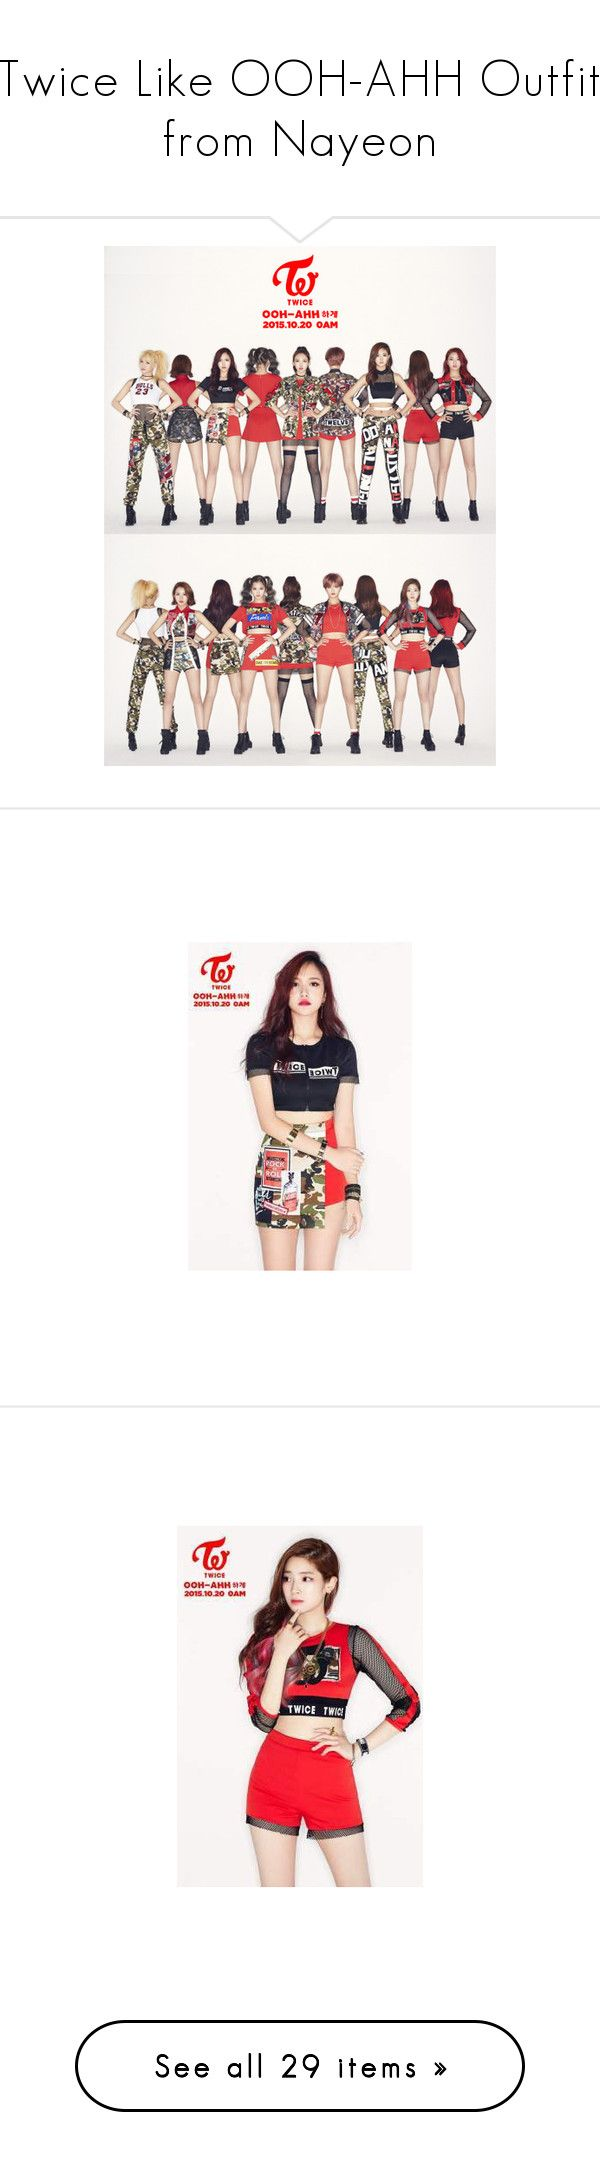 """""""Twice Like OOH-AHH Outfit from Nayeon"""" by schnpri ❤ liked on Polyvore featuring kpop, Maison Margiela, Le Ciel Bleu, Robert Talbott, Ash, twice, girlgroup, kpopoutfits, Tzuyu and Topshop"""